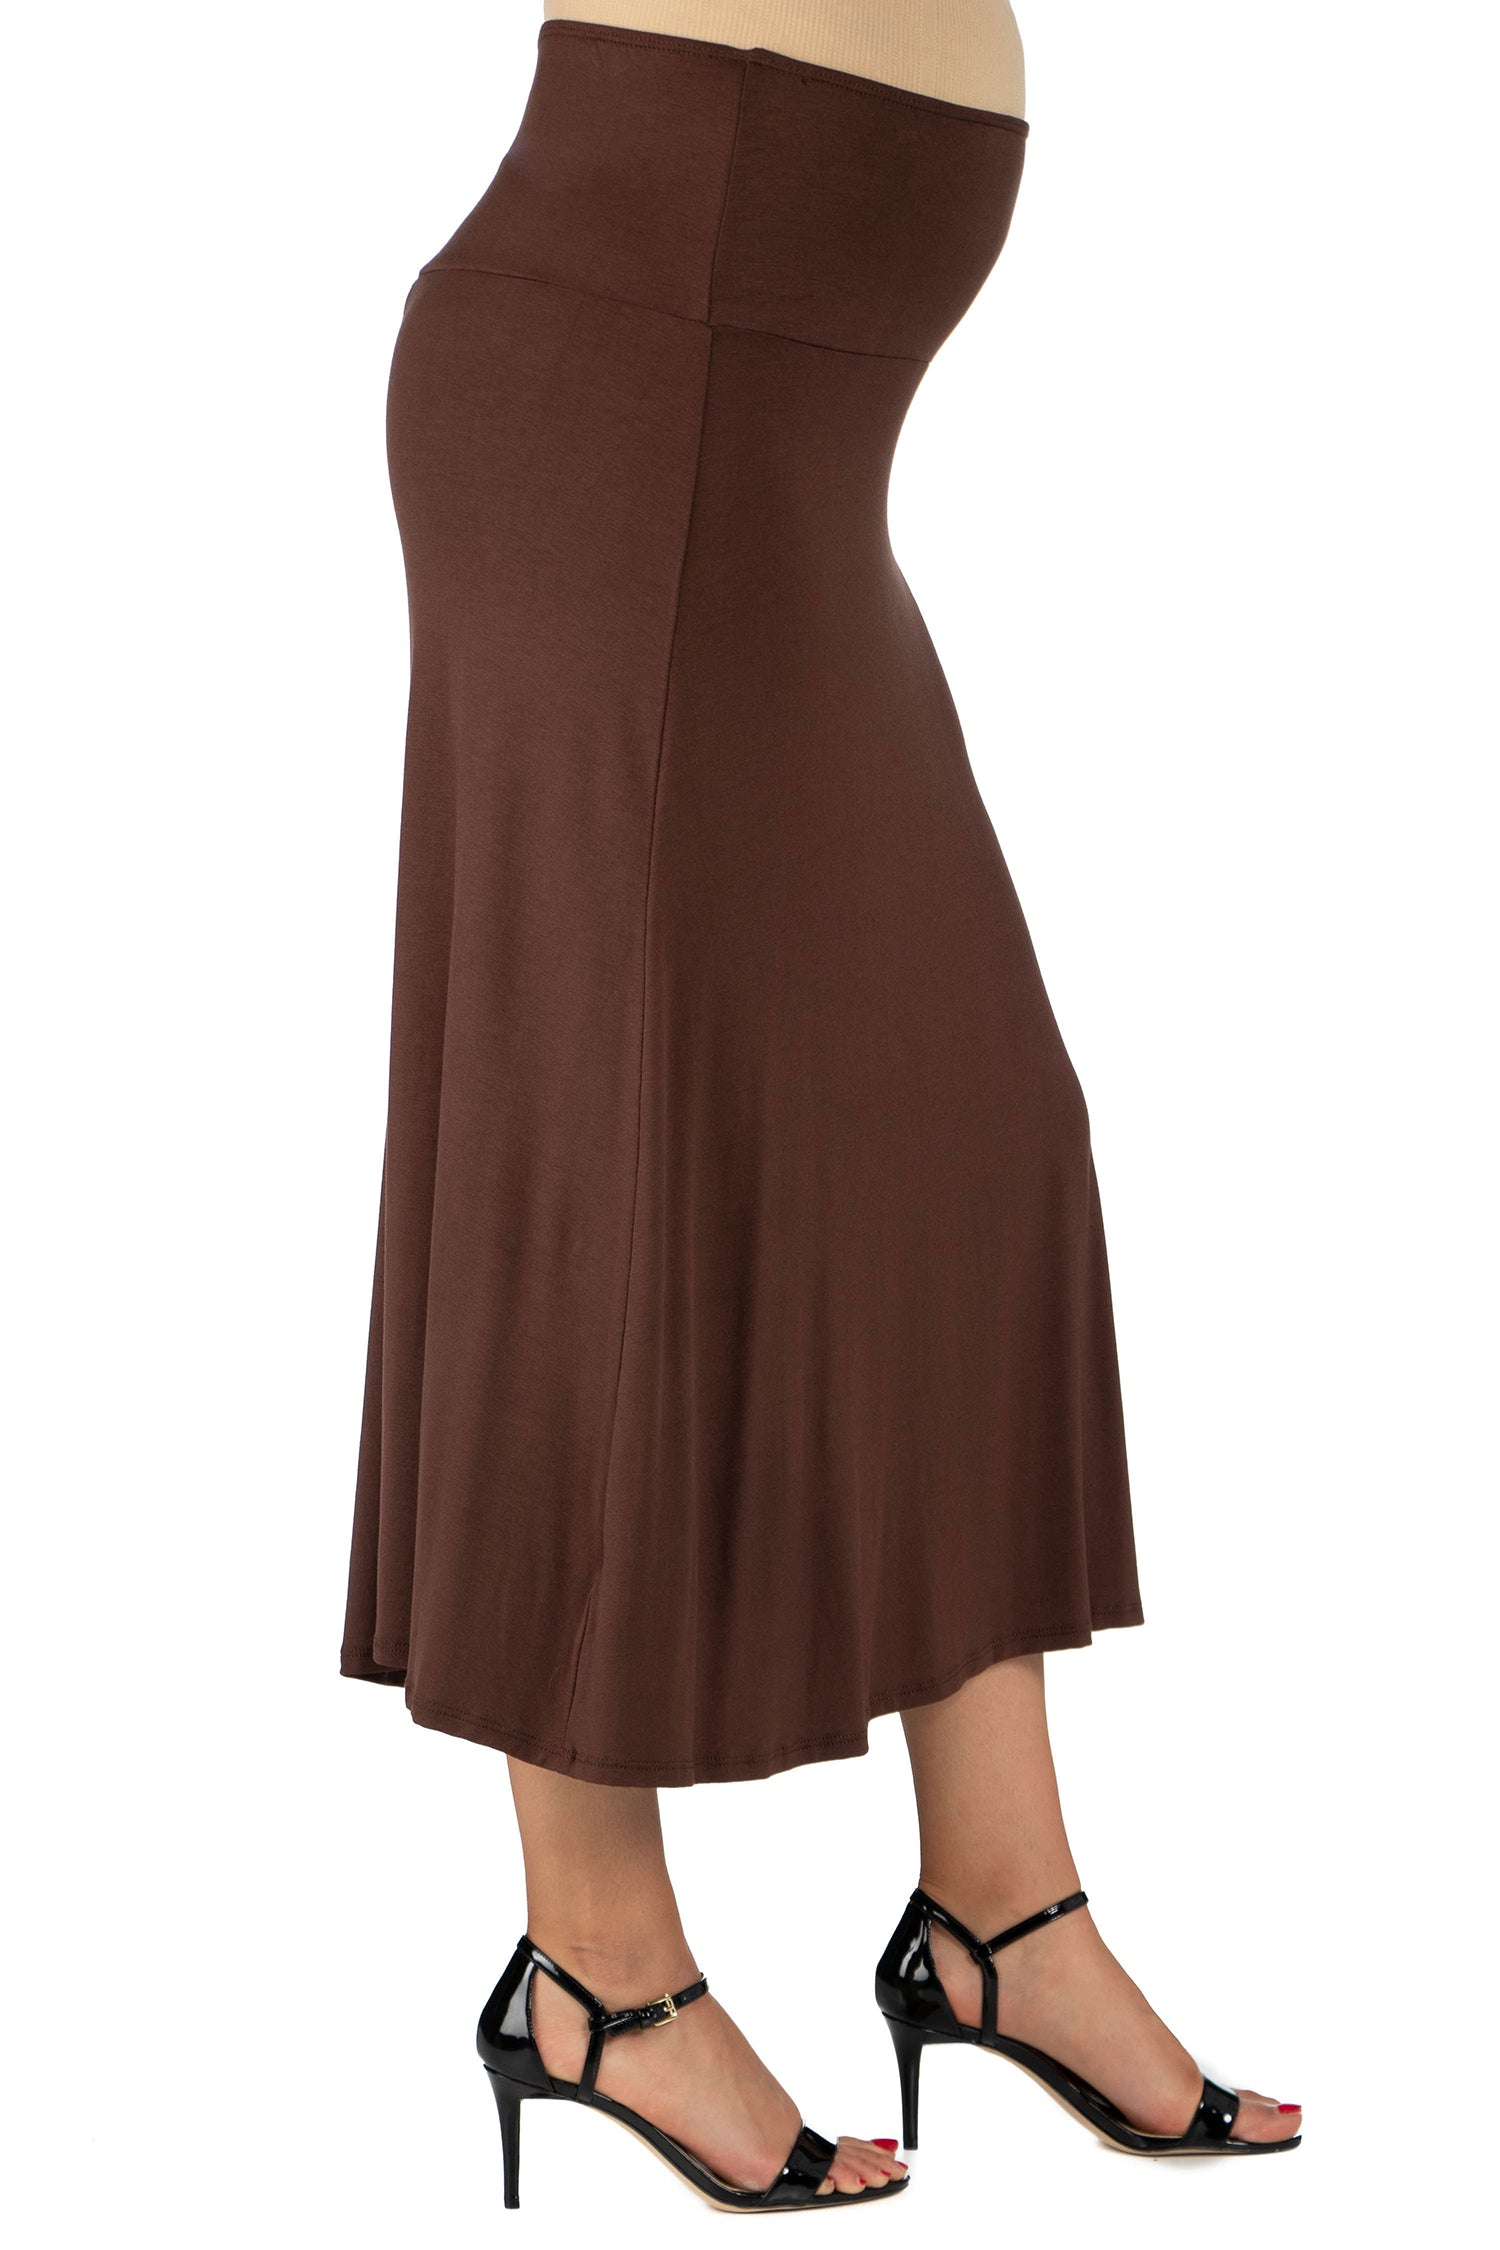 24seven Comfort Apparel Womens Comfortable Fit Elastic Waist Maternity Maxi Skirt-SKIRT-24Seven Comfort Apparel-BROWN-1X-24/7 Comfort Apparel